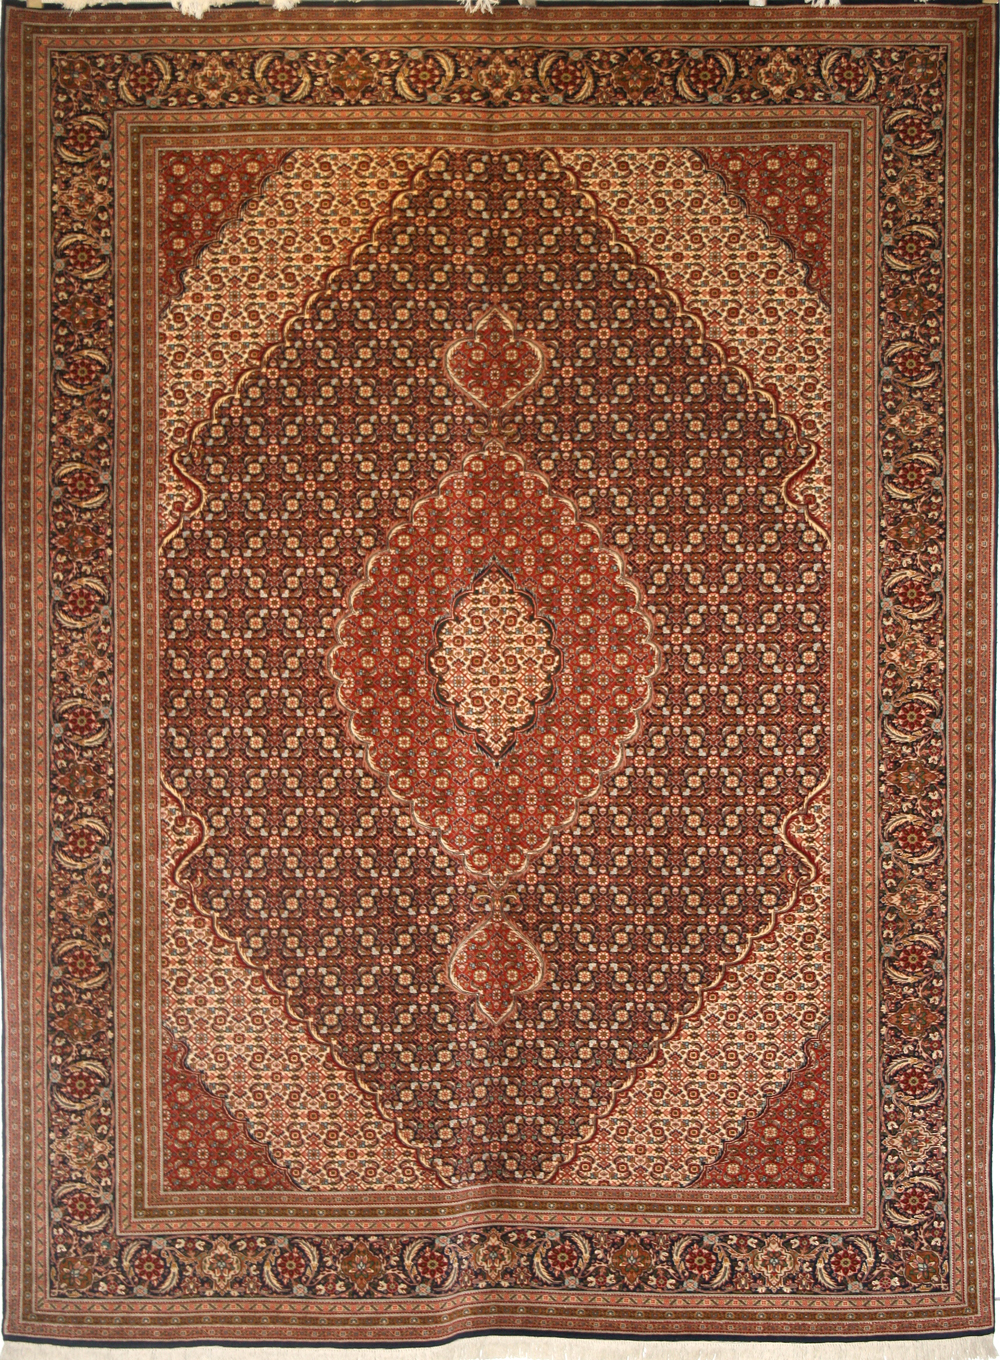 Tabriz Rug Origin And Description Guide